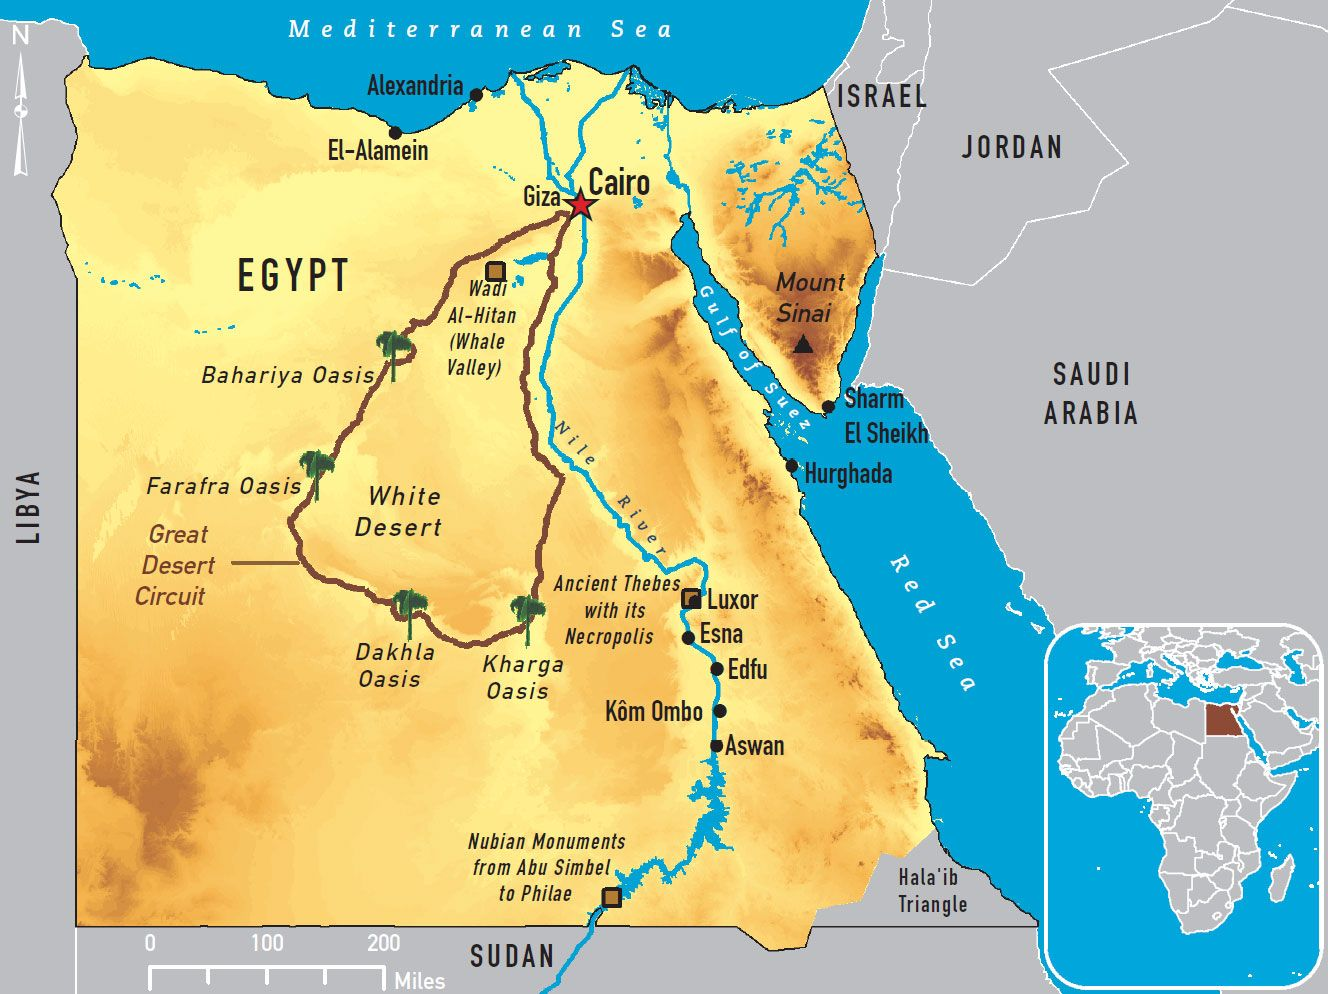 The nile river is approximately 4132 miles it is the longest river it is the longest river in the world the historical sites of ancient egypt are located along the banks of the nile river gumiabroncs Gallery